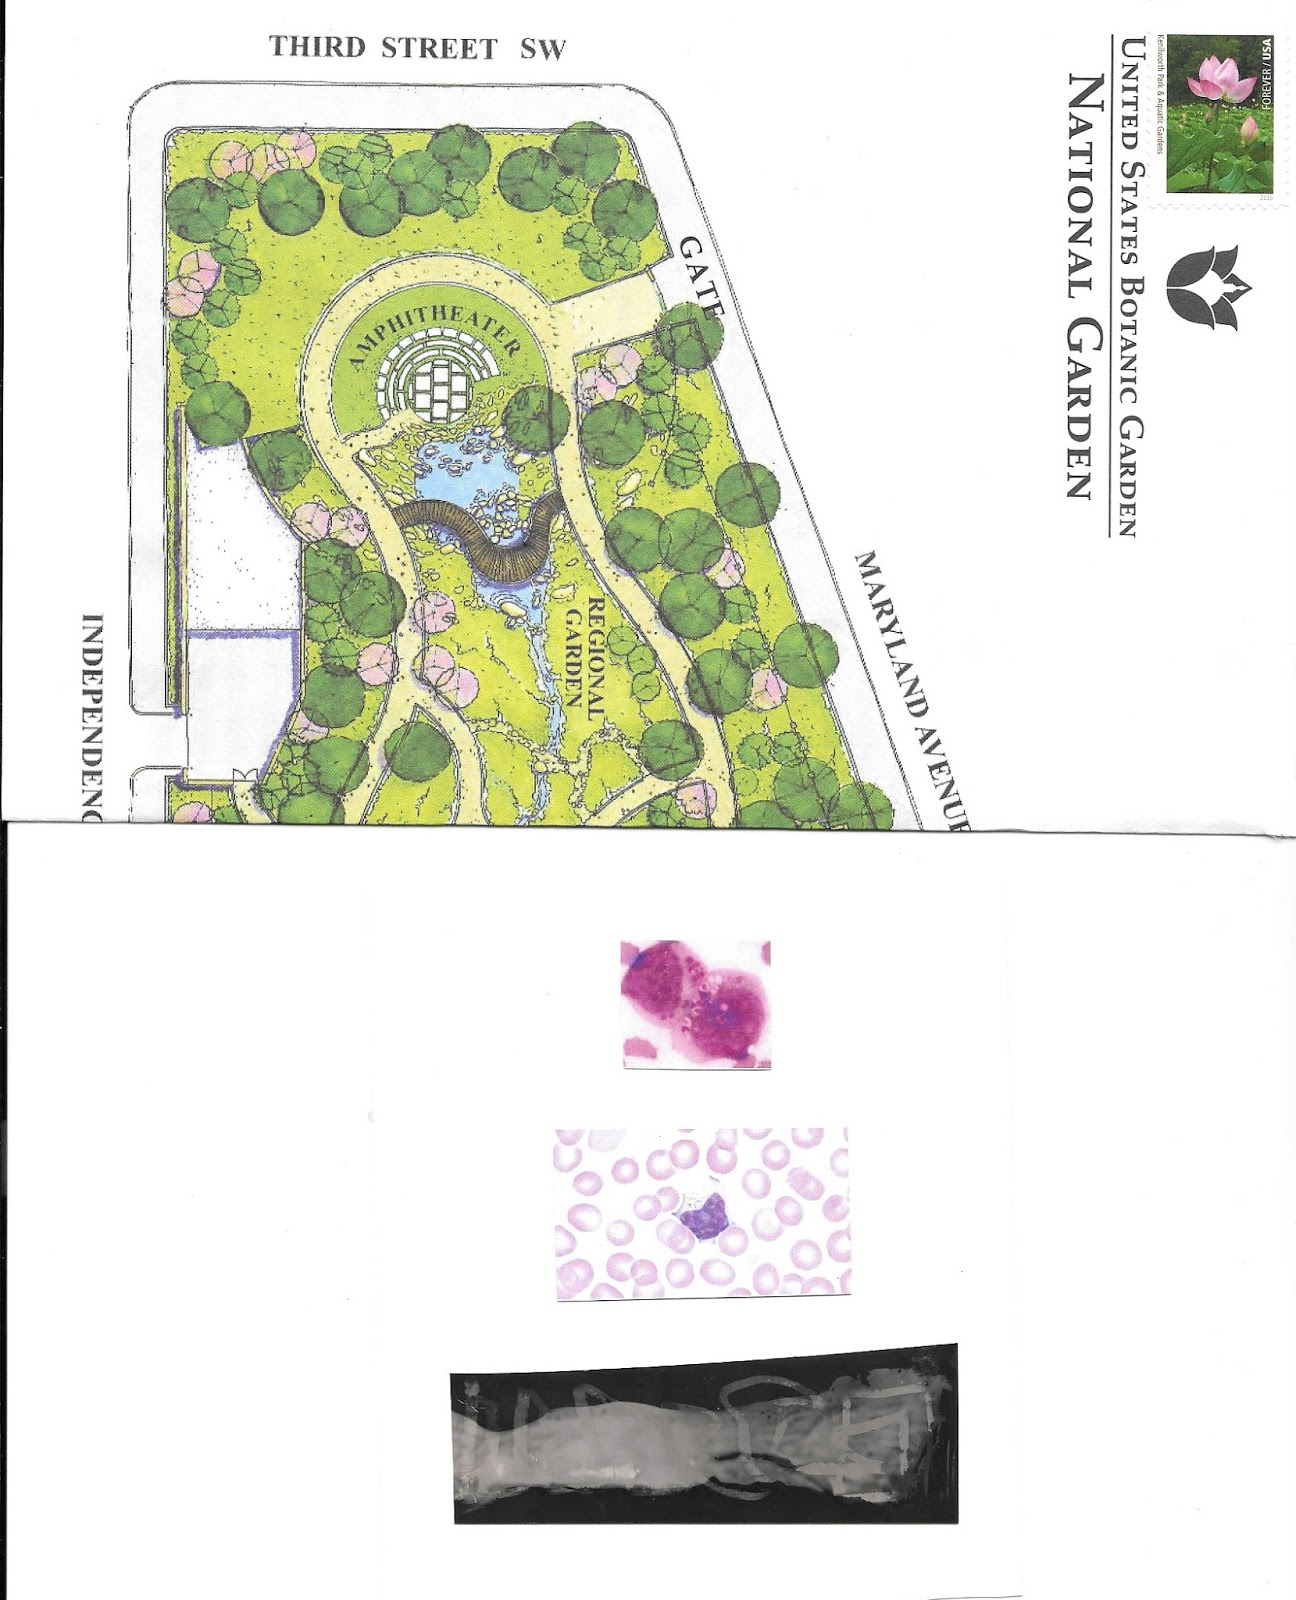 an envelope made from a map of the national botanical garden sent to honi c with a collage inside